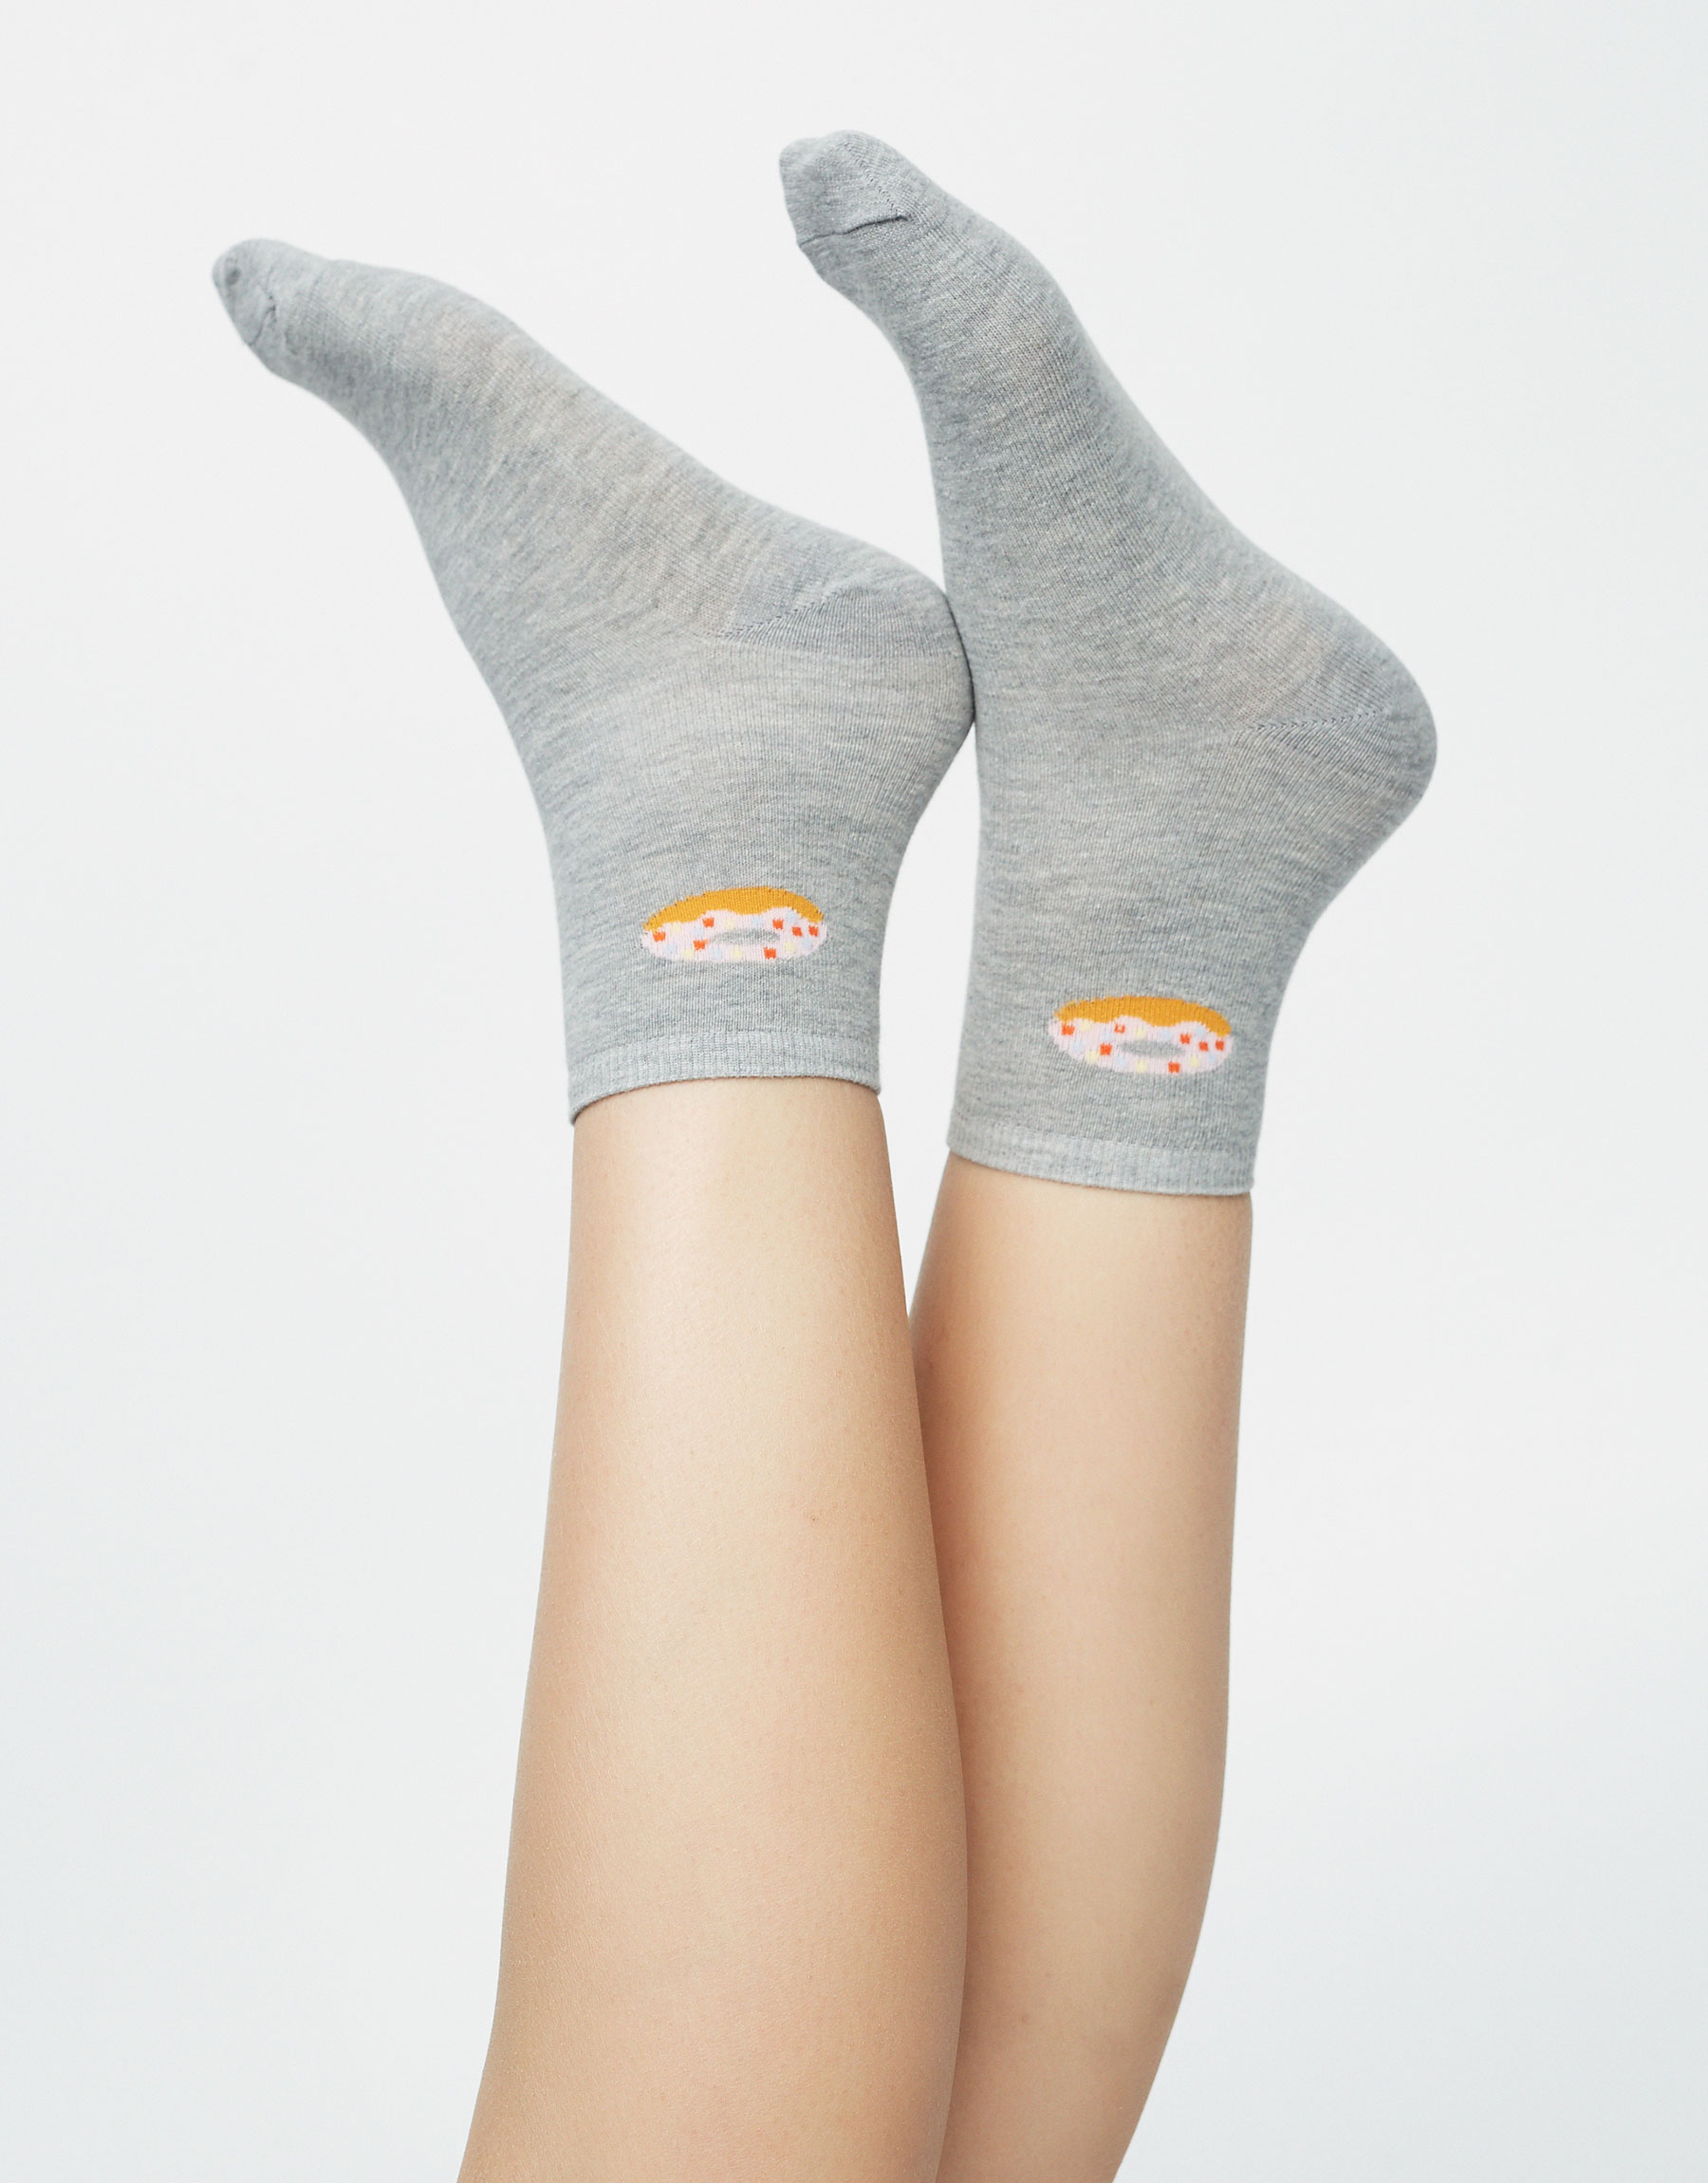 Socks with doughnut illustration